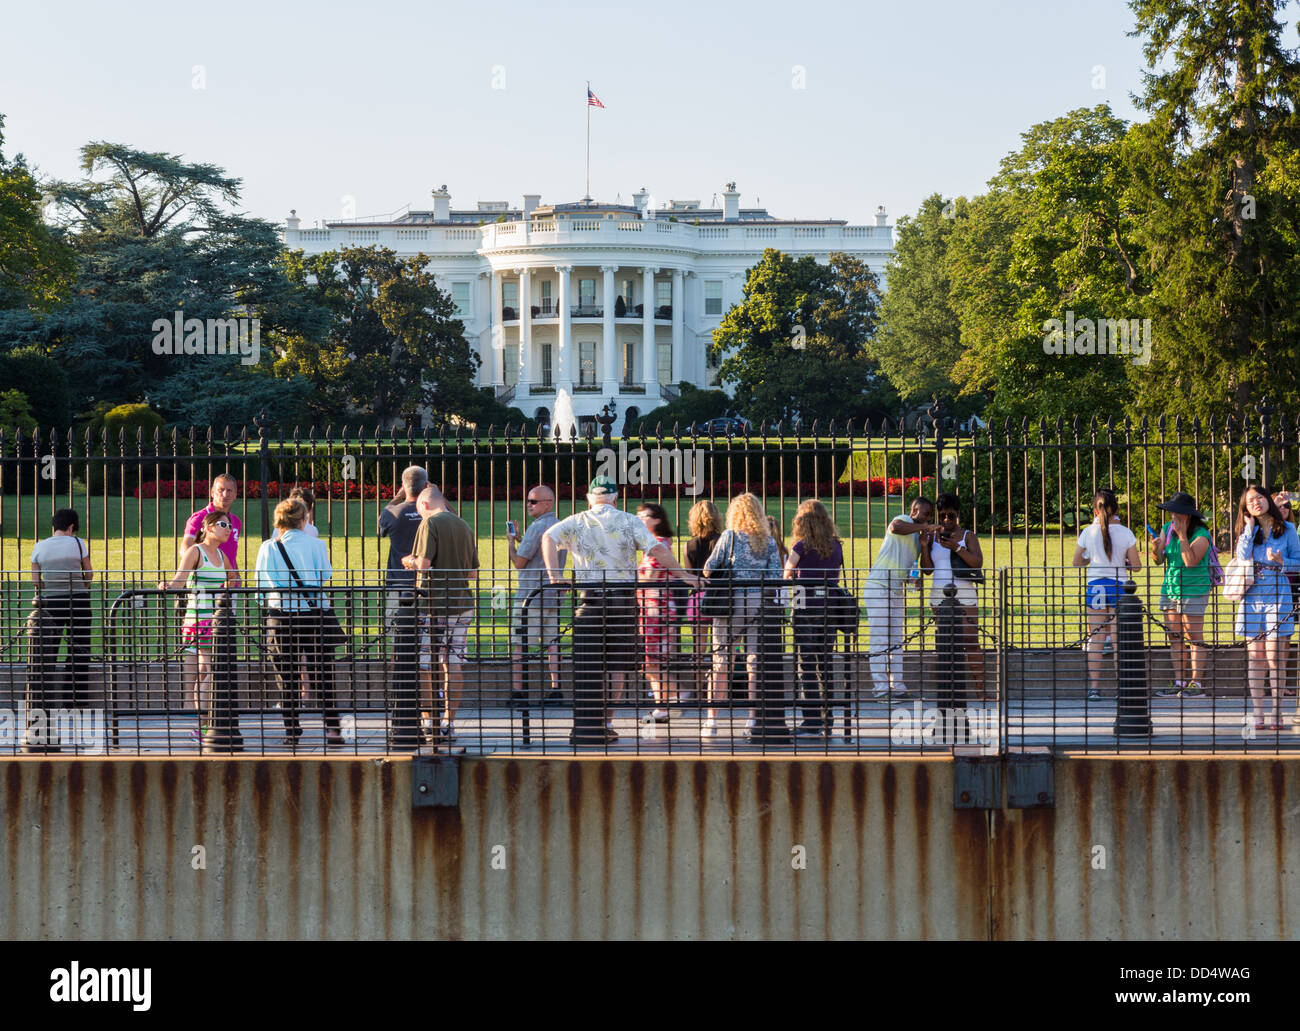 Crowds look at South Lawn view of White House Washington DC by fence and security barriers - Stock Image